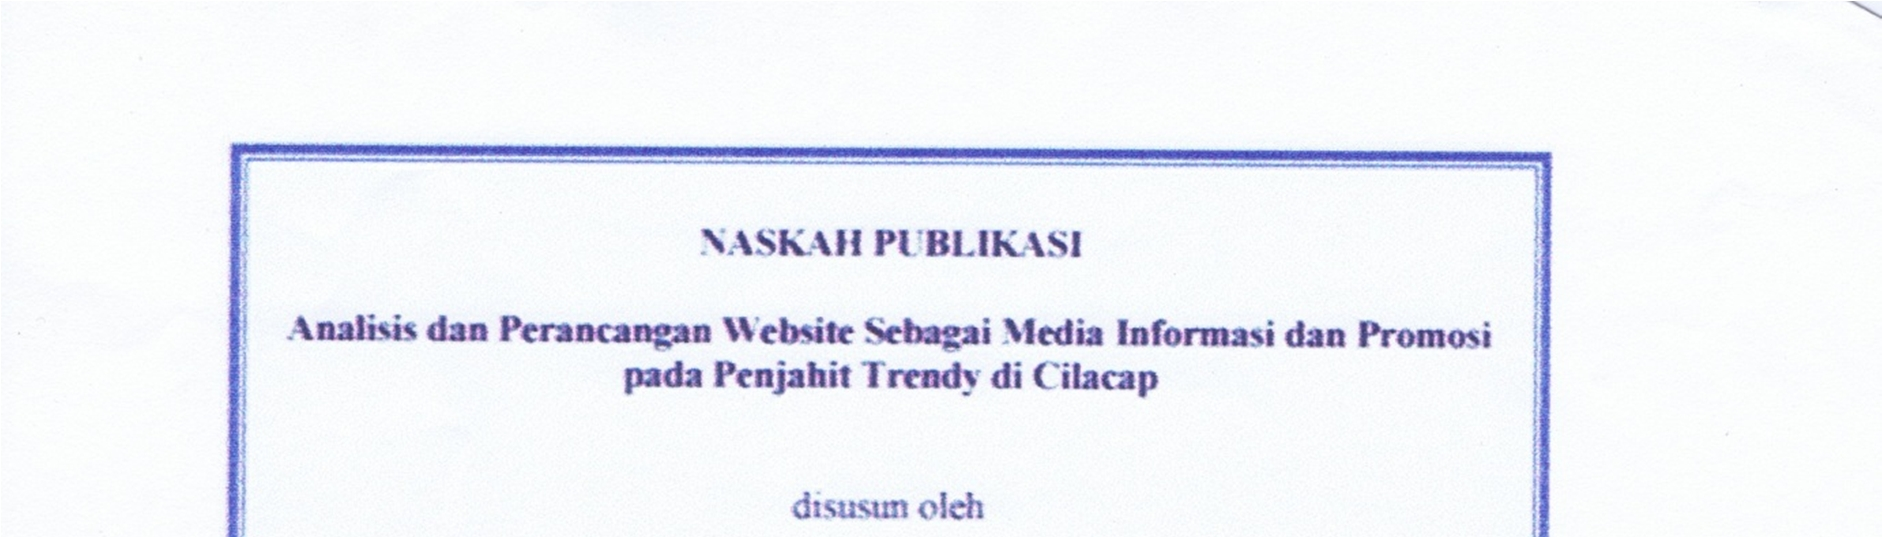 ANALYSIS AND WEB SCHEME AS MEDIA INFORMATION AND PROMOTION AT TRENDY TAILOR IN CILACAP ANALIIS DAN PERANCANGAN WEBSITE